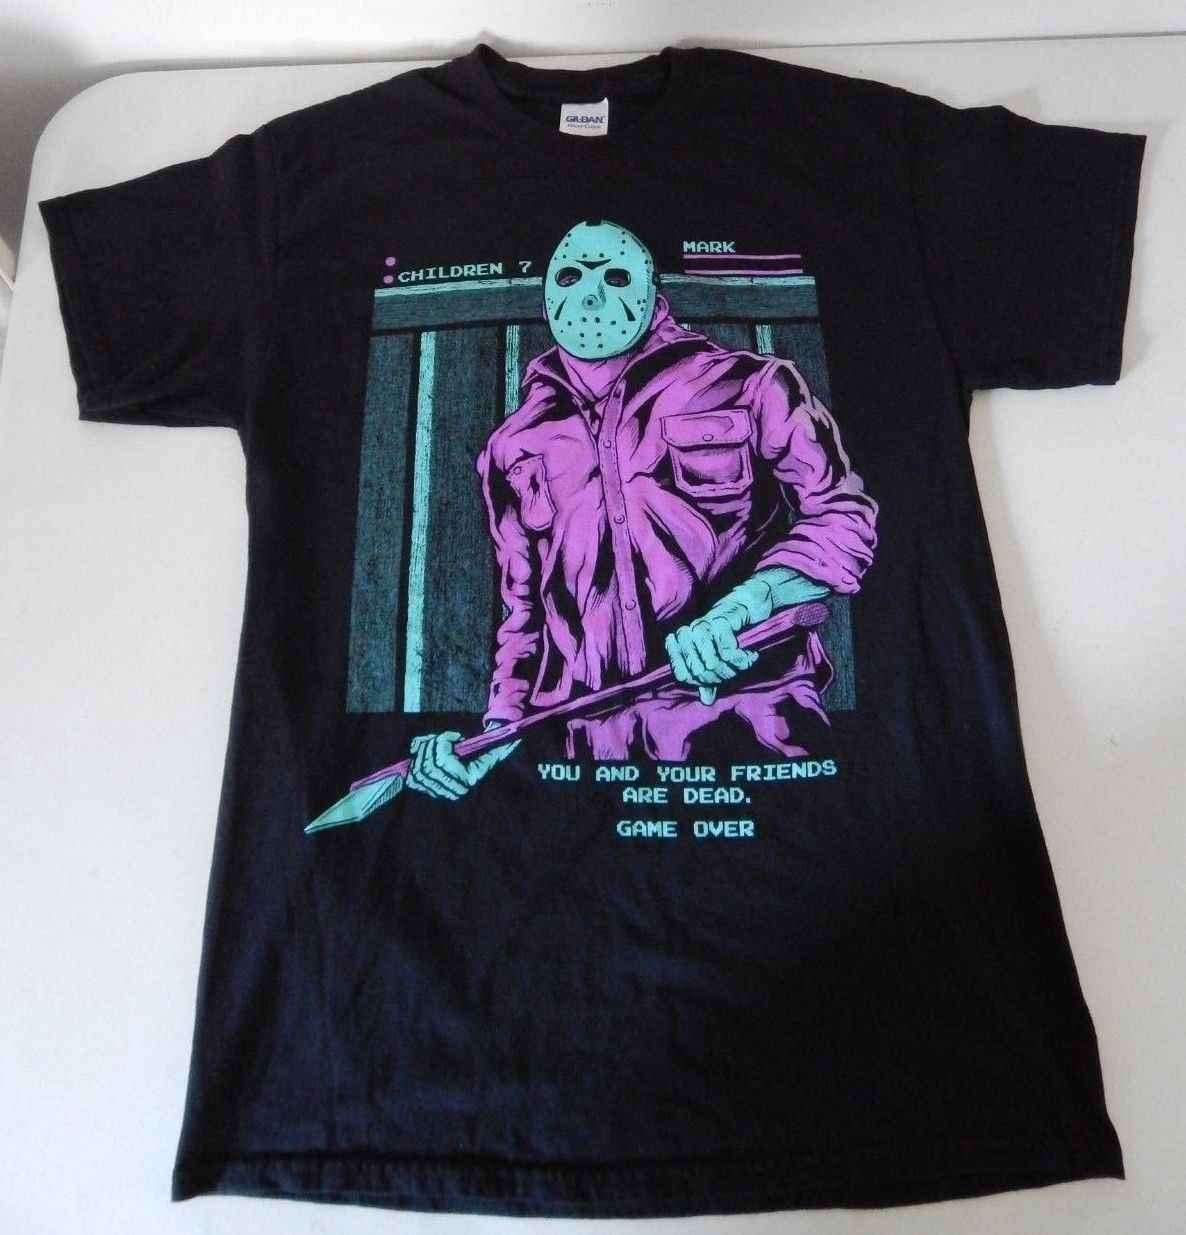 Friday the 13th Retro Jason Voorhees NES Game Schrik Rags Stijl Medium T-Shirt Gratis verzending Tops t-shirt Fashion Klassieke